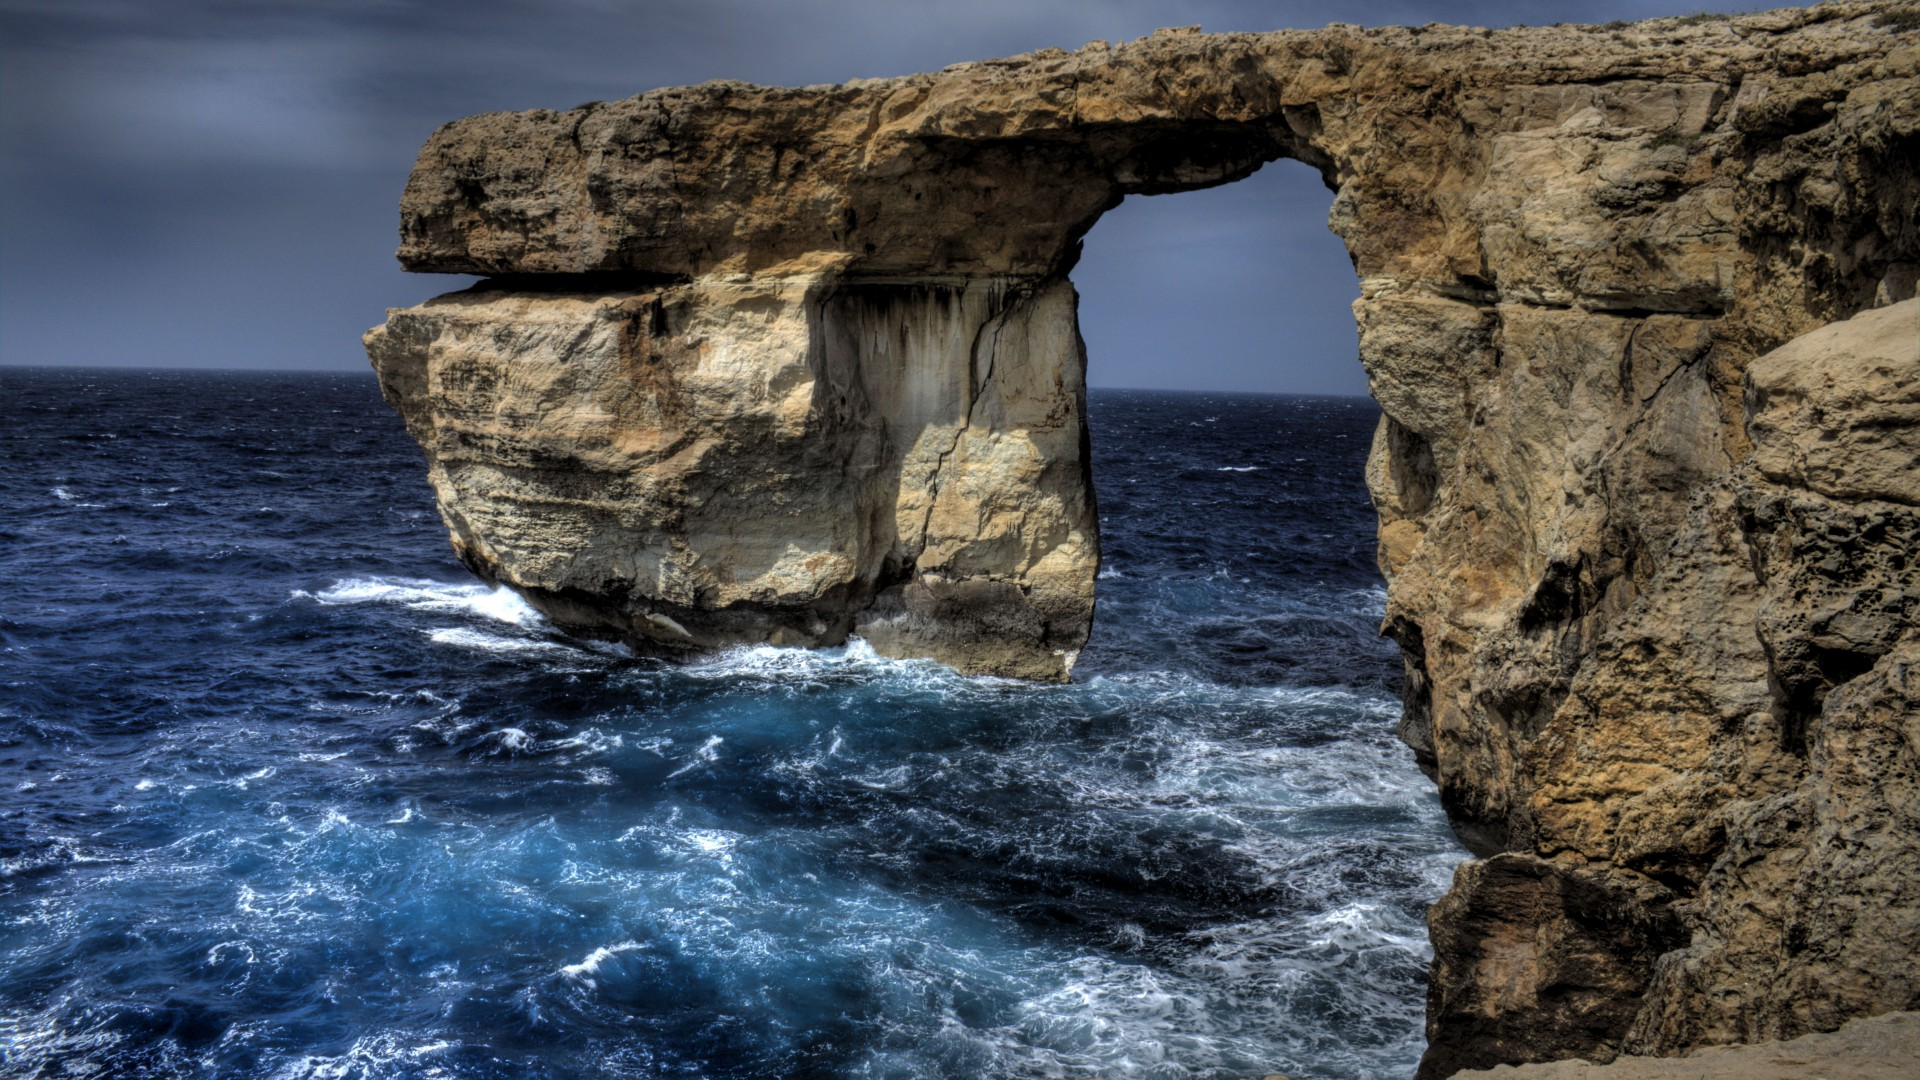 Wallpaper Malta 5k 4k Wallpaper Sea Ocean Rocks